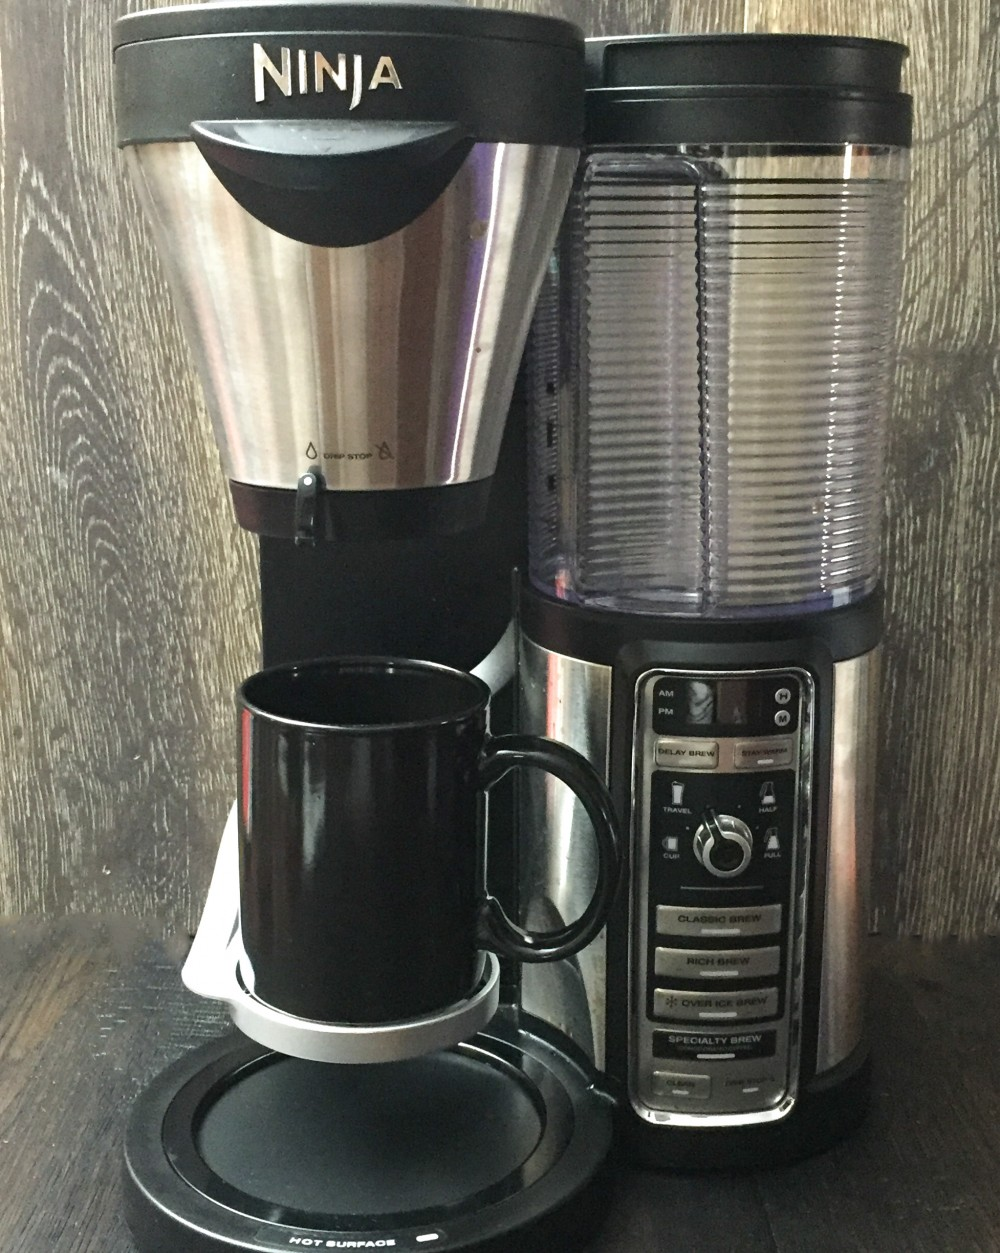 Ninja Coffee Maker Instructions : Ninja Coffee Bar with Auto IQ Review - Powered By Mom